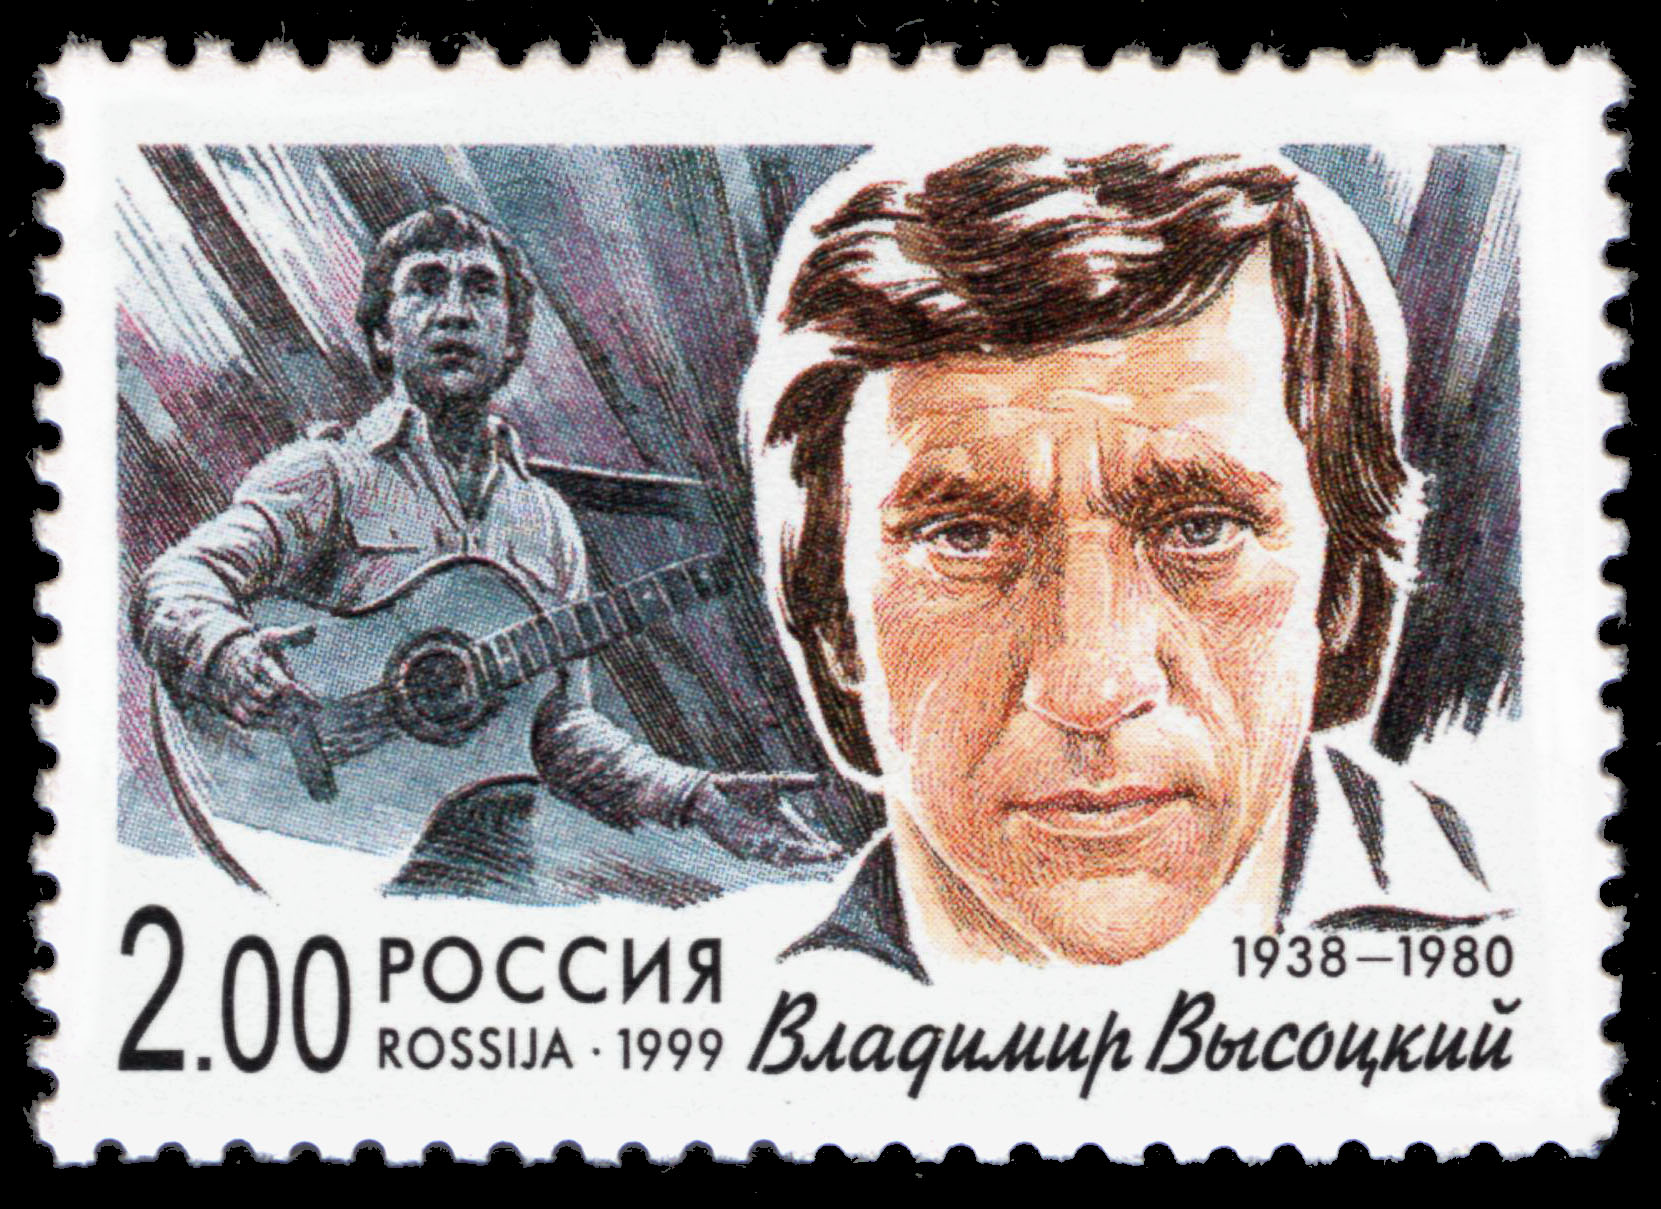 A Russian stamp from 1999 celebrating Vysotsky.